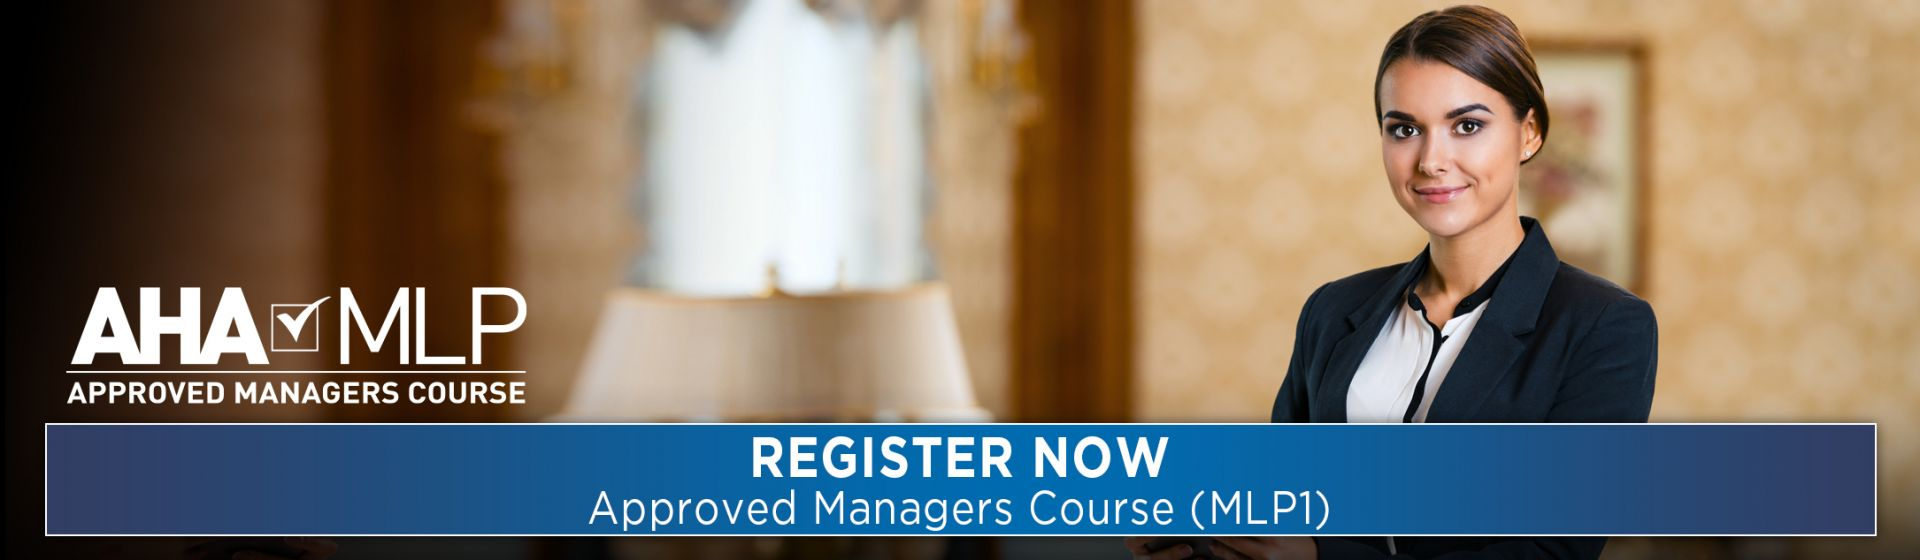 APPROVED MANAGERS COURSE